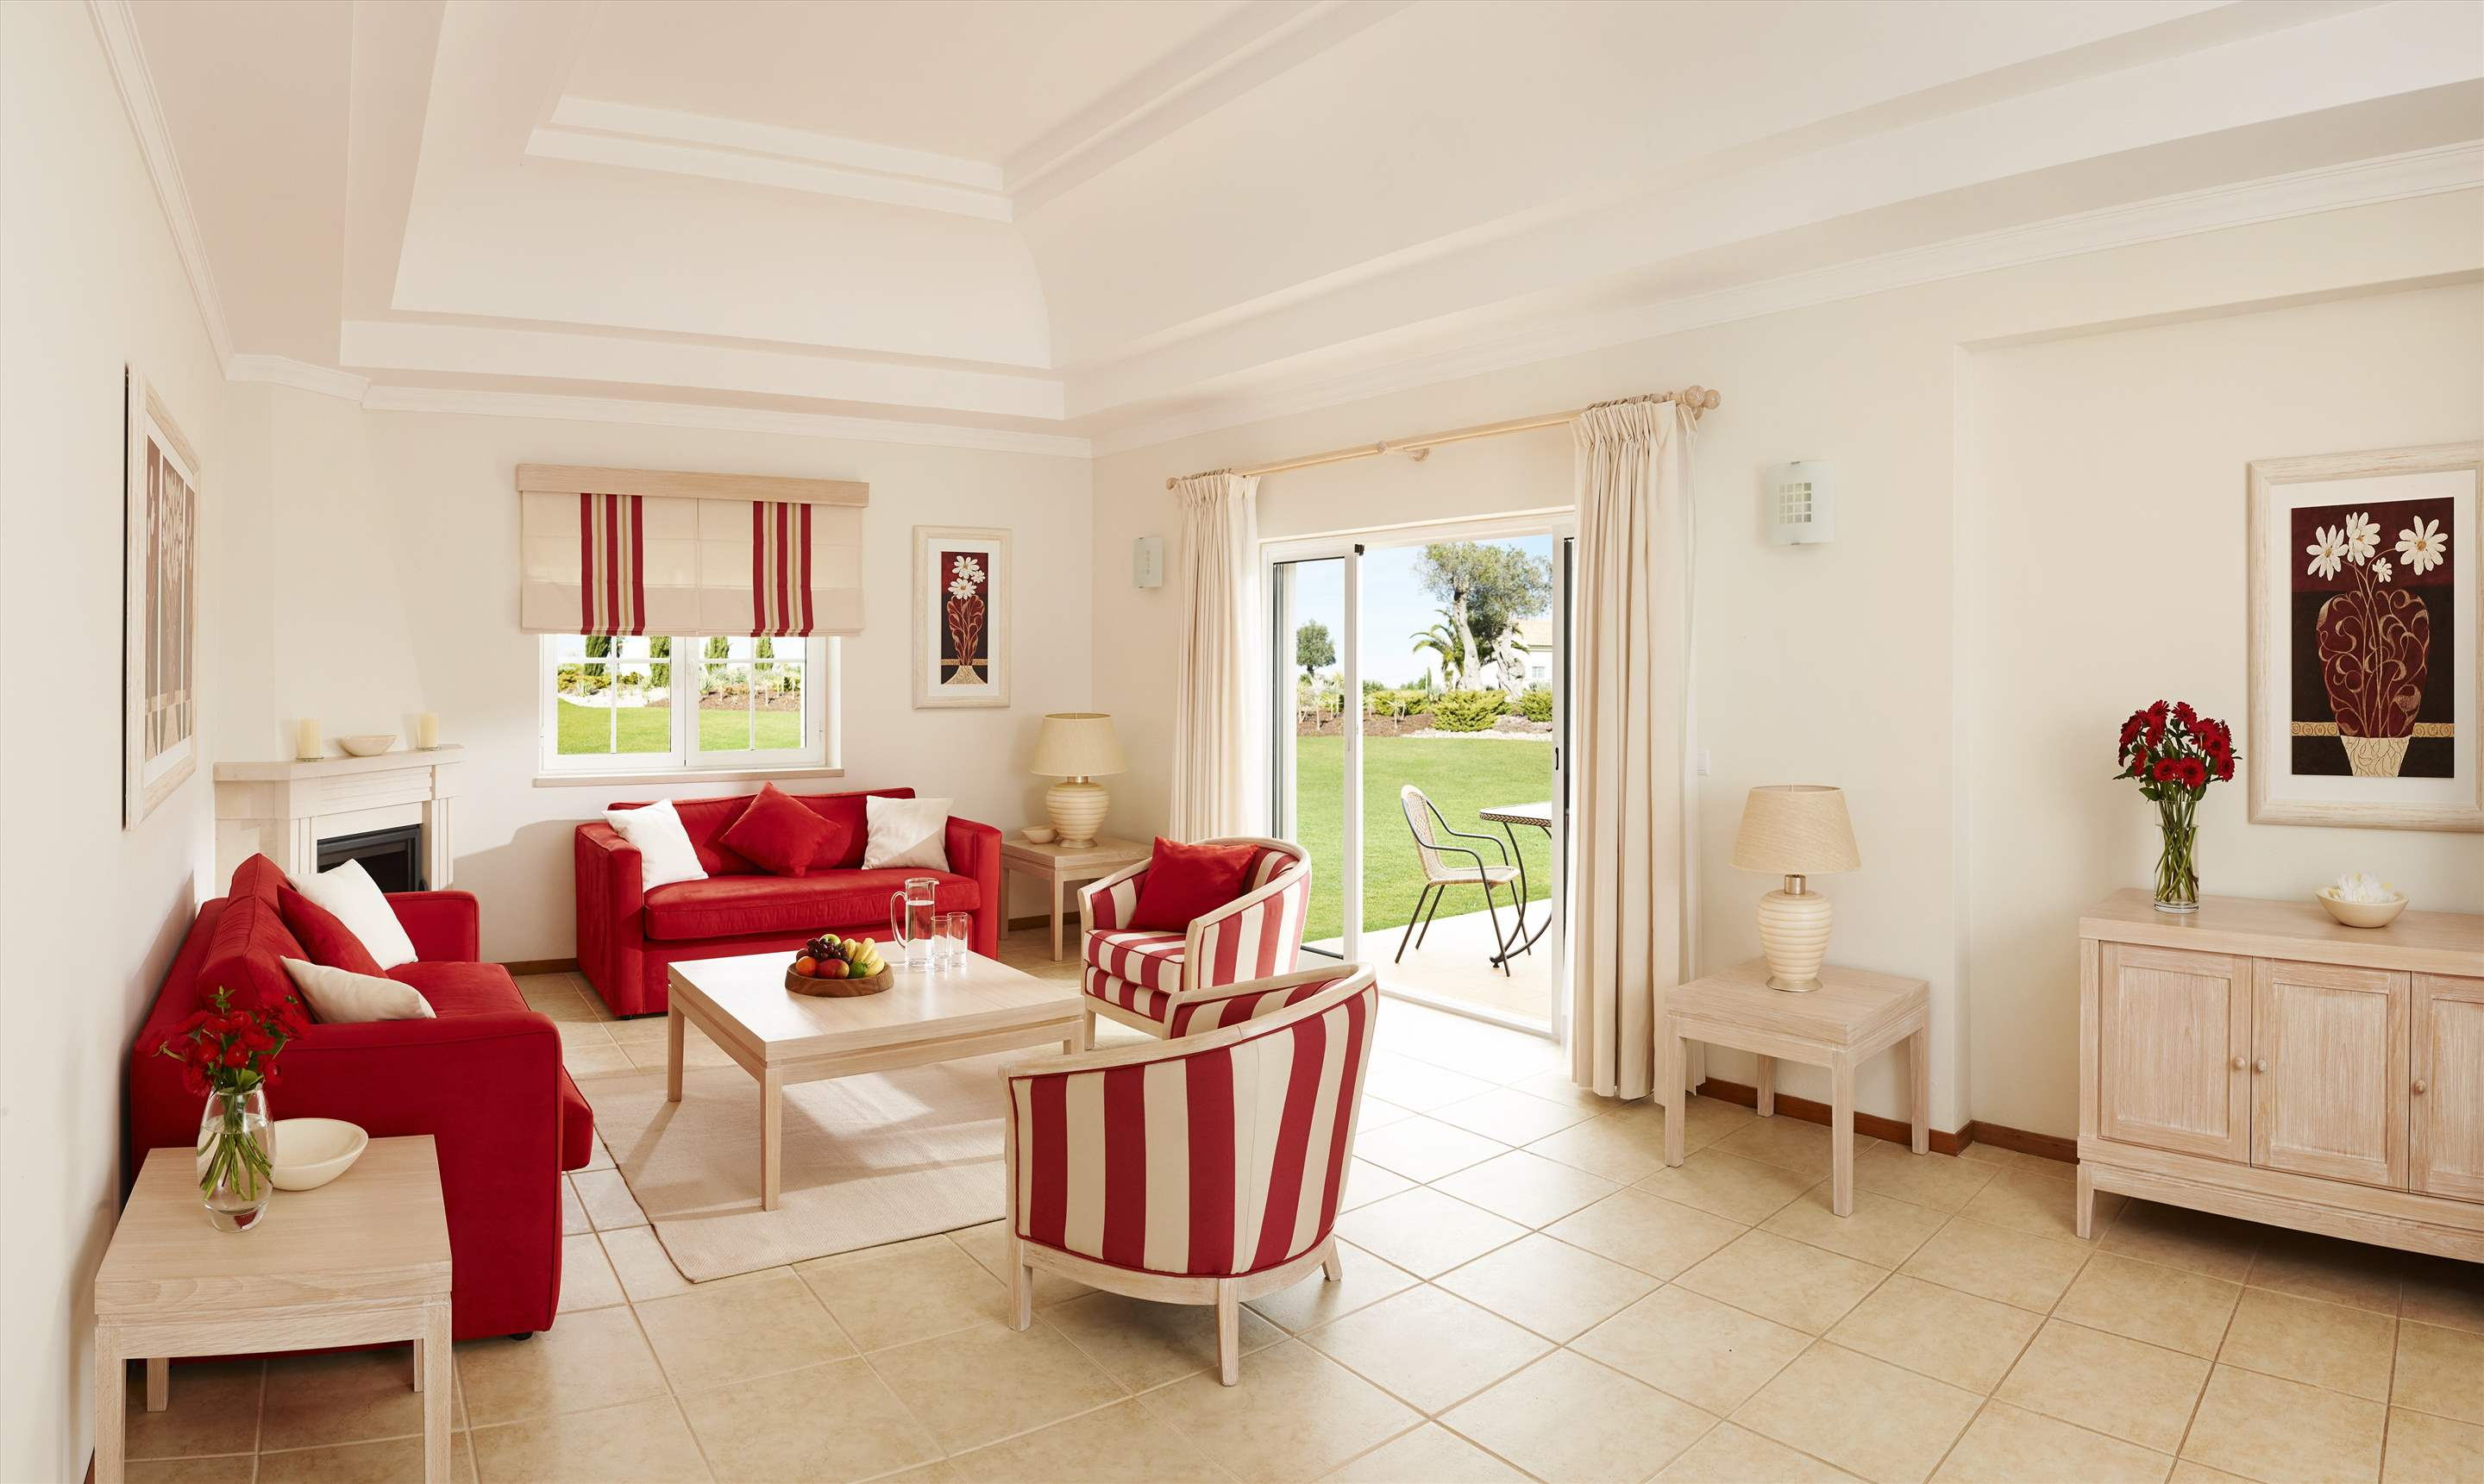 Vale d'Oliveiras 2 Bed Suite Garden View , Bed & Breakfast, 2 bedroom apartment in Vale d'Oliveiras Resort & Spa, Algarve Photo #5